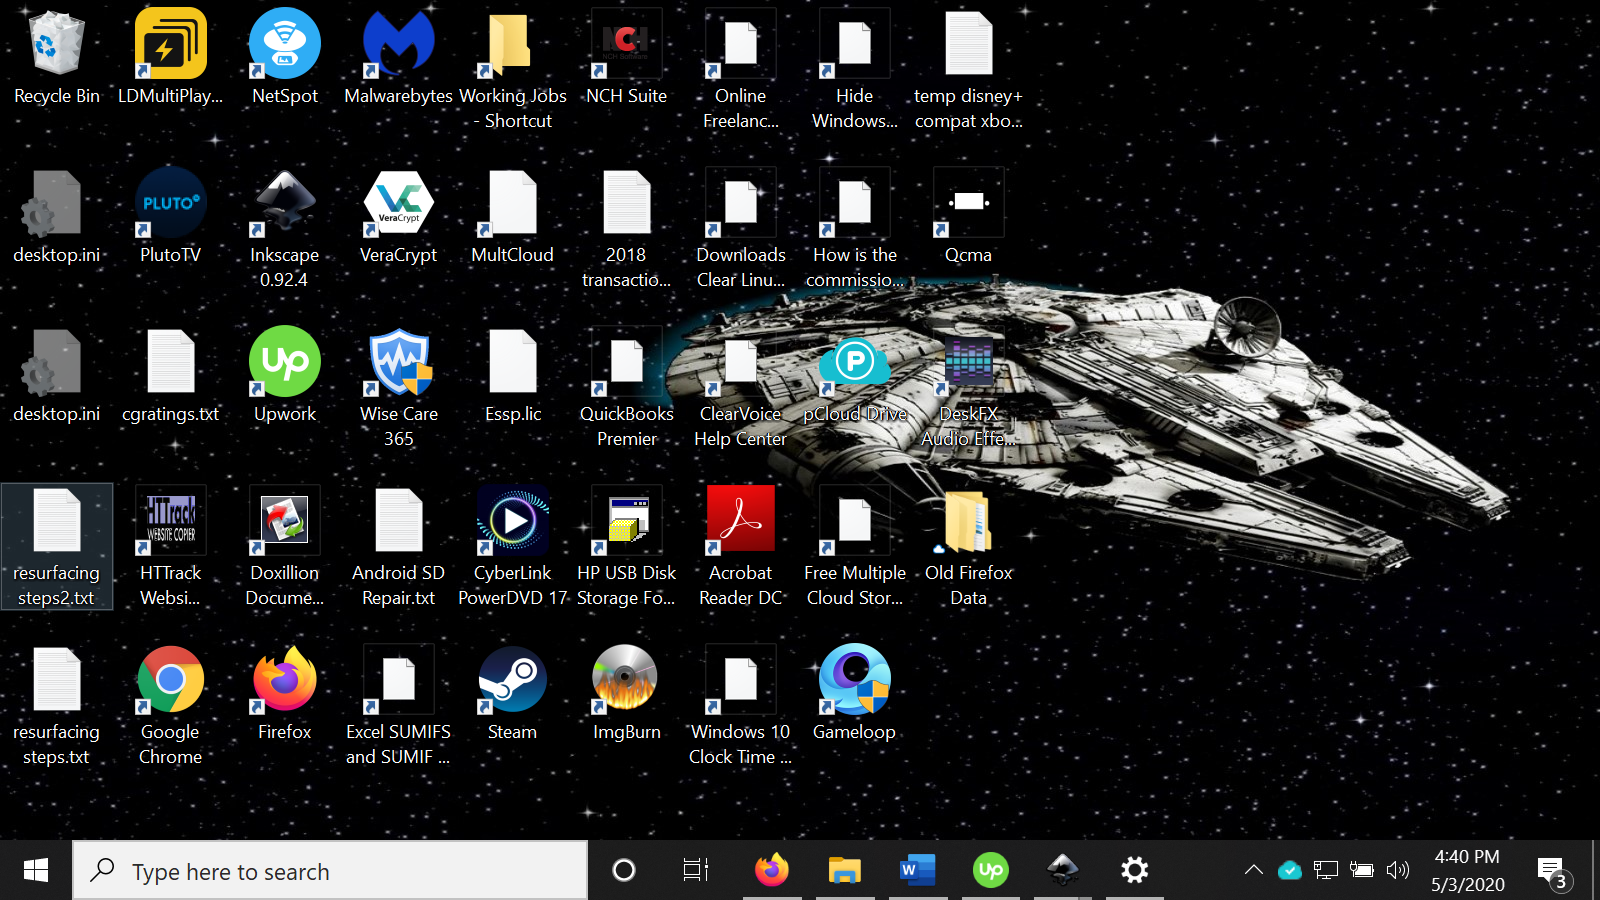 How To Make Desktop Icons Smaller in Windows 10